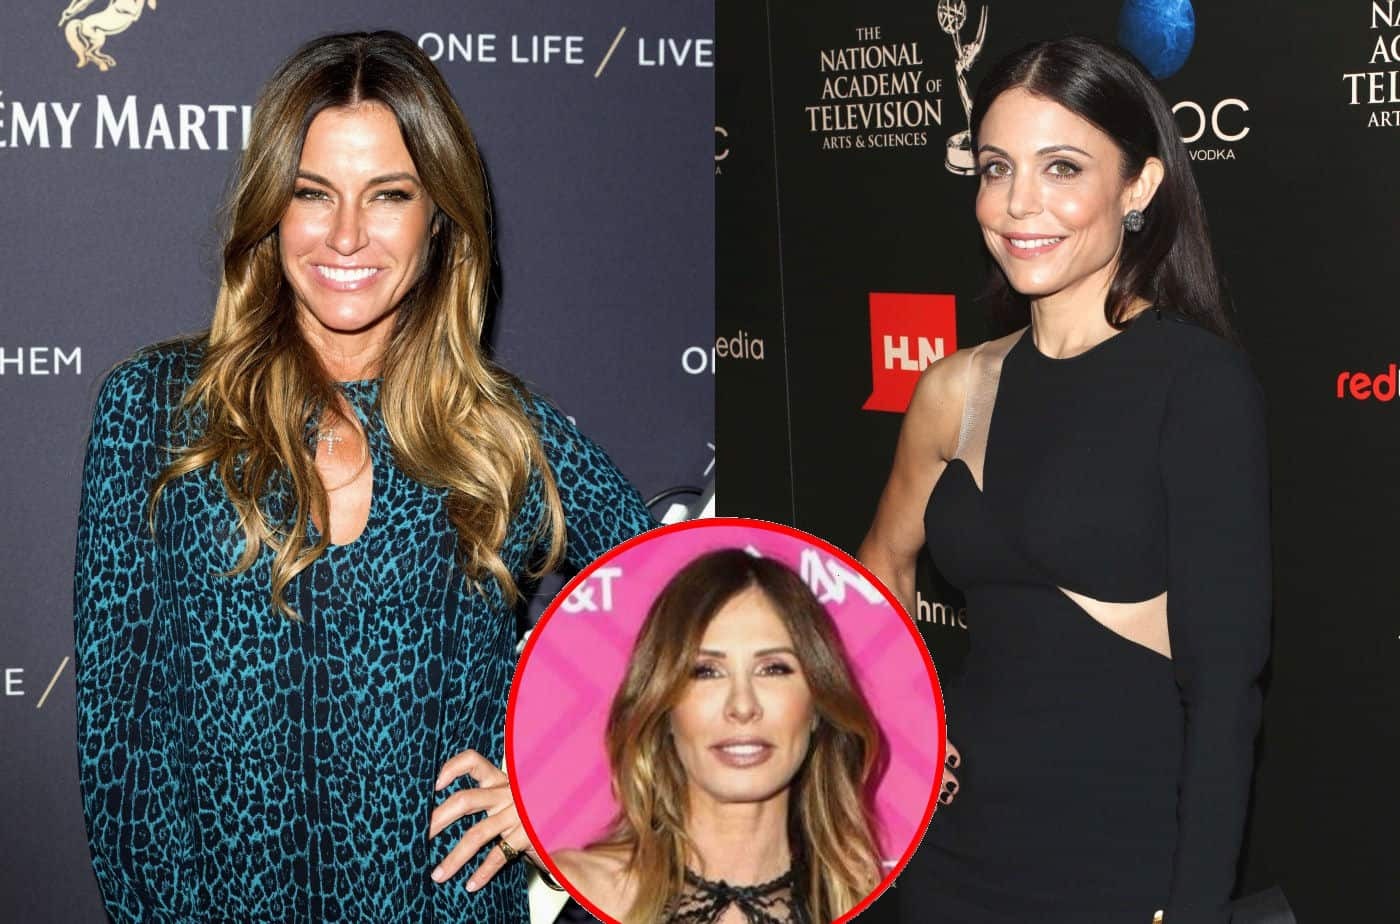 RHONY's Kelly Bensimon slams Bethenny Frankel and Carole Radziwill